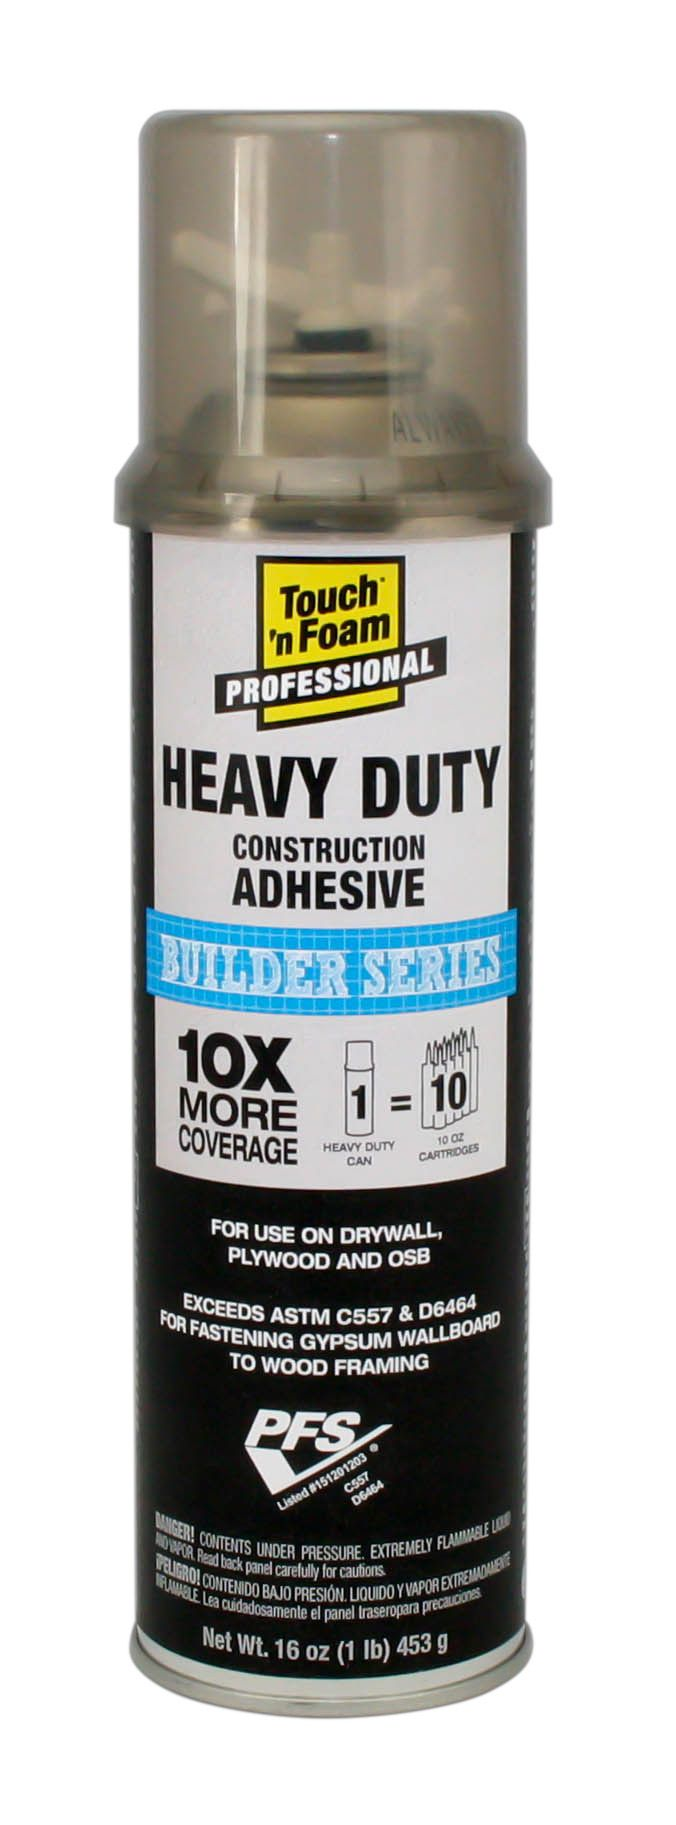 Yields 10X more than traditional cartridge construction adhesive Applies as a ready-to-use straw foam Cures quickly Provides dense, super-strong bond, won't produce squeeze out Use on drywall, plywood, joists, steel, aluminum, pressure-treated lumber, PVC, OSB, and painted surfaces Installs faster Use fewer fasteners Bridges minor gaps on irregular surfaces Prevents nail pops Improves soundproofing No odor